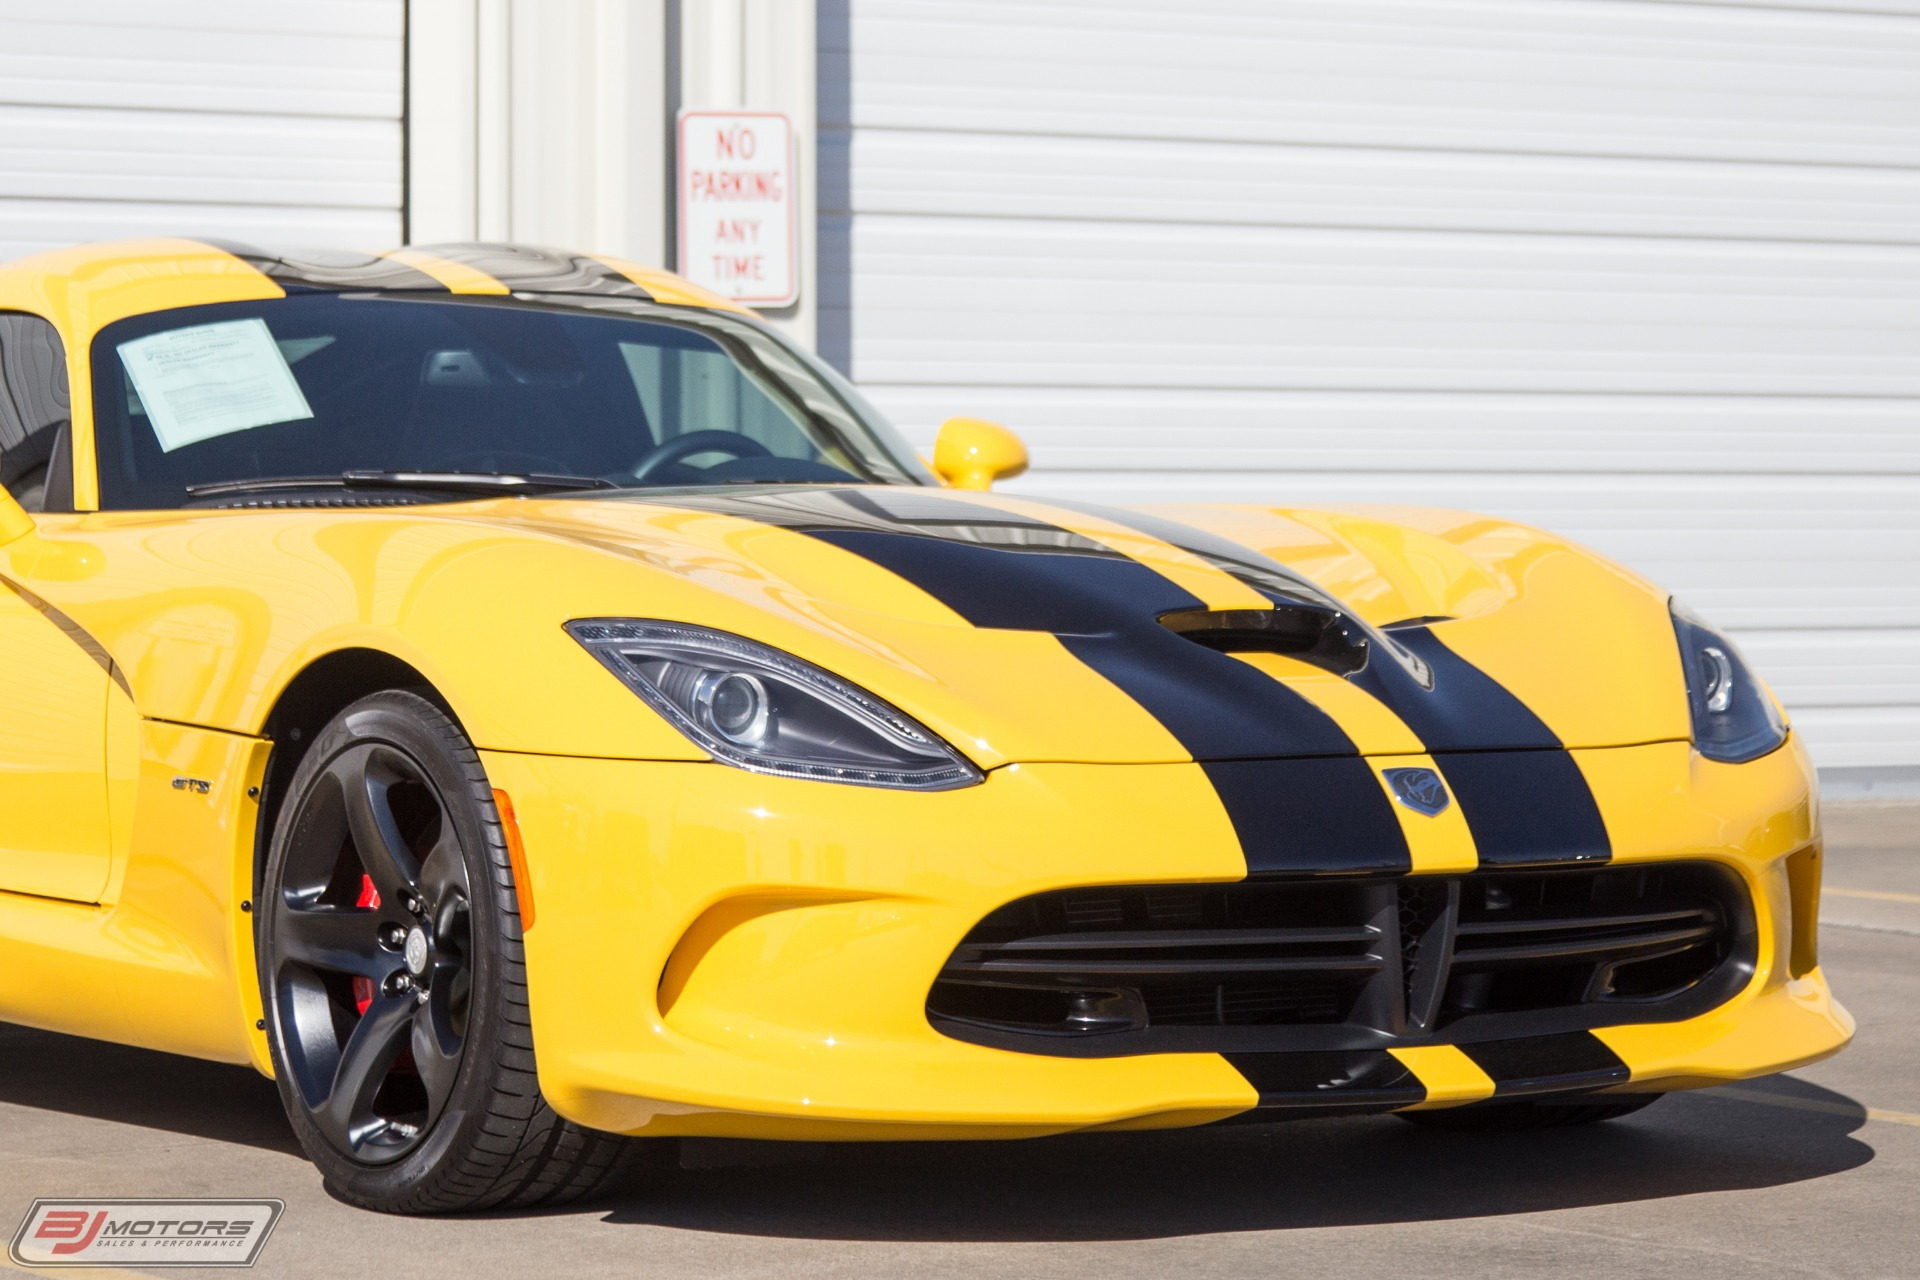 Used-2014-Dodge-SRT-Viper-GTS-Low-Miles-and-Immaculate-Viper